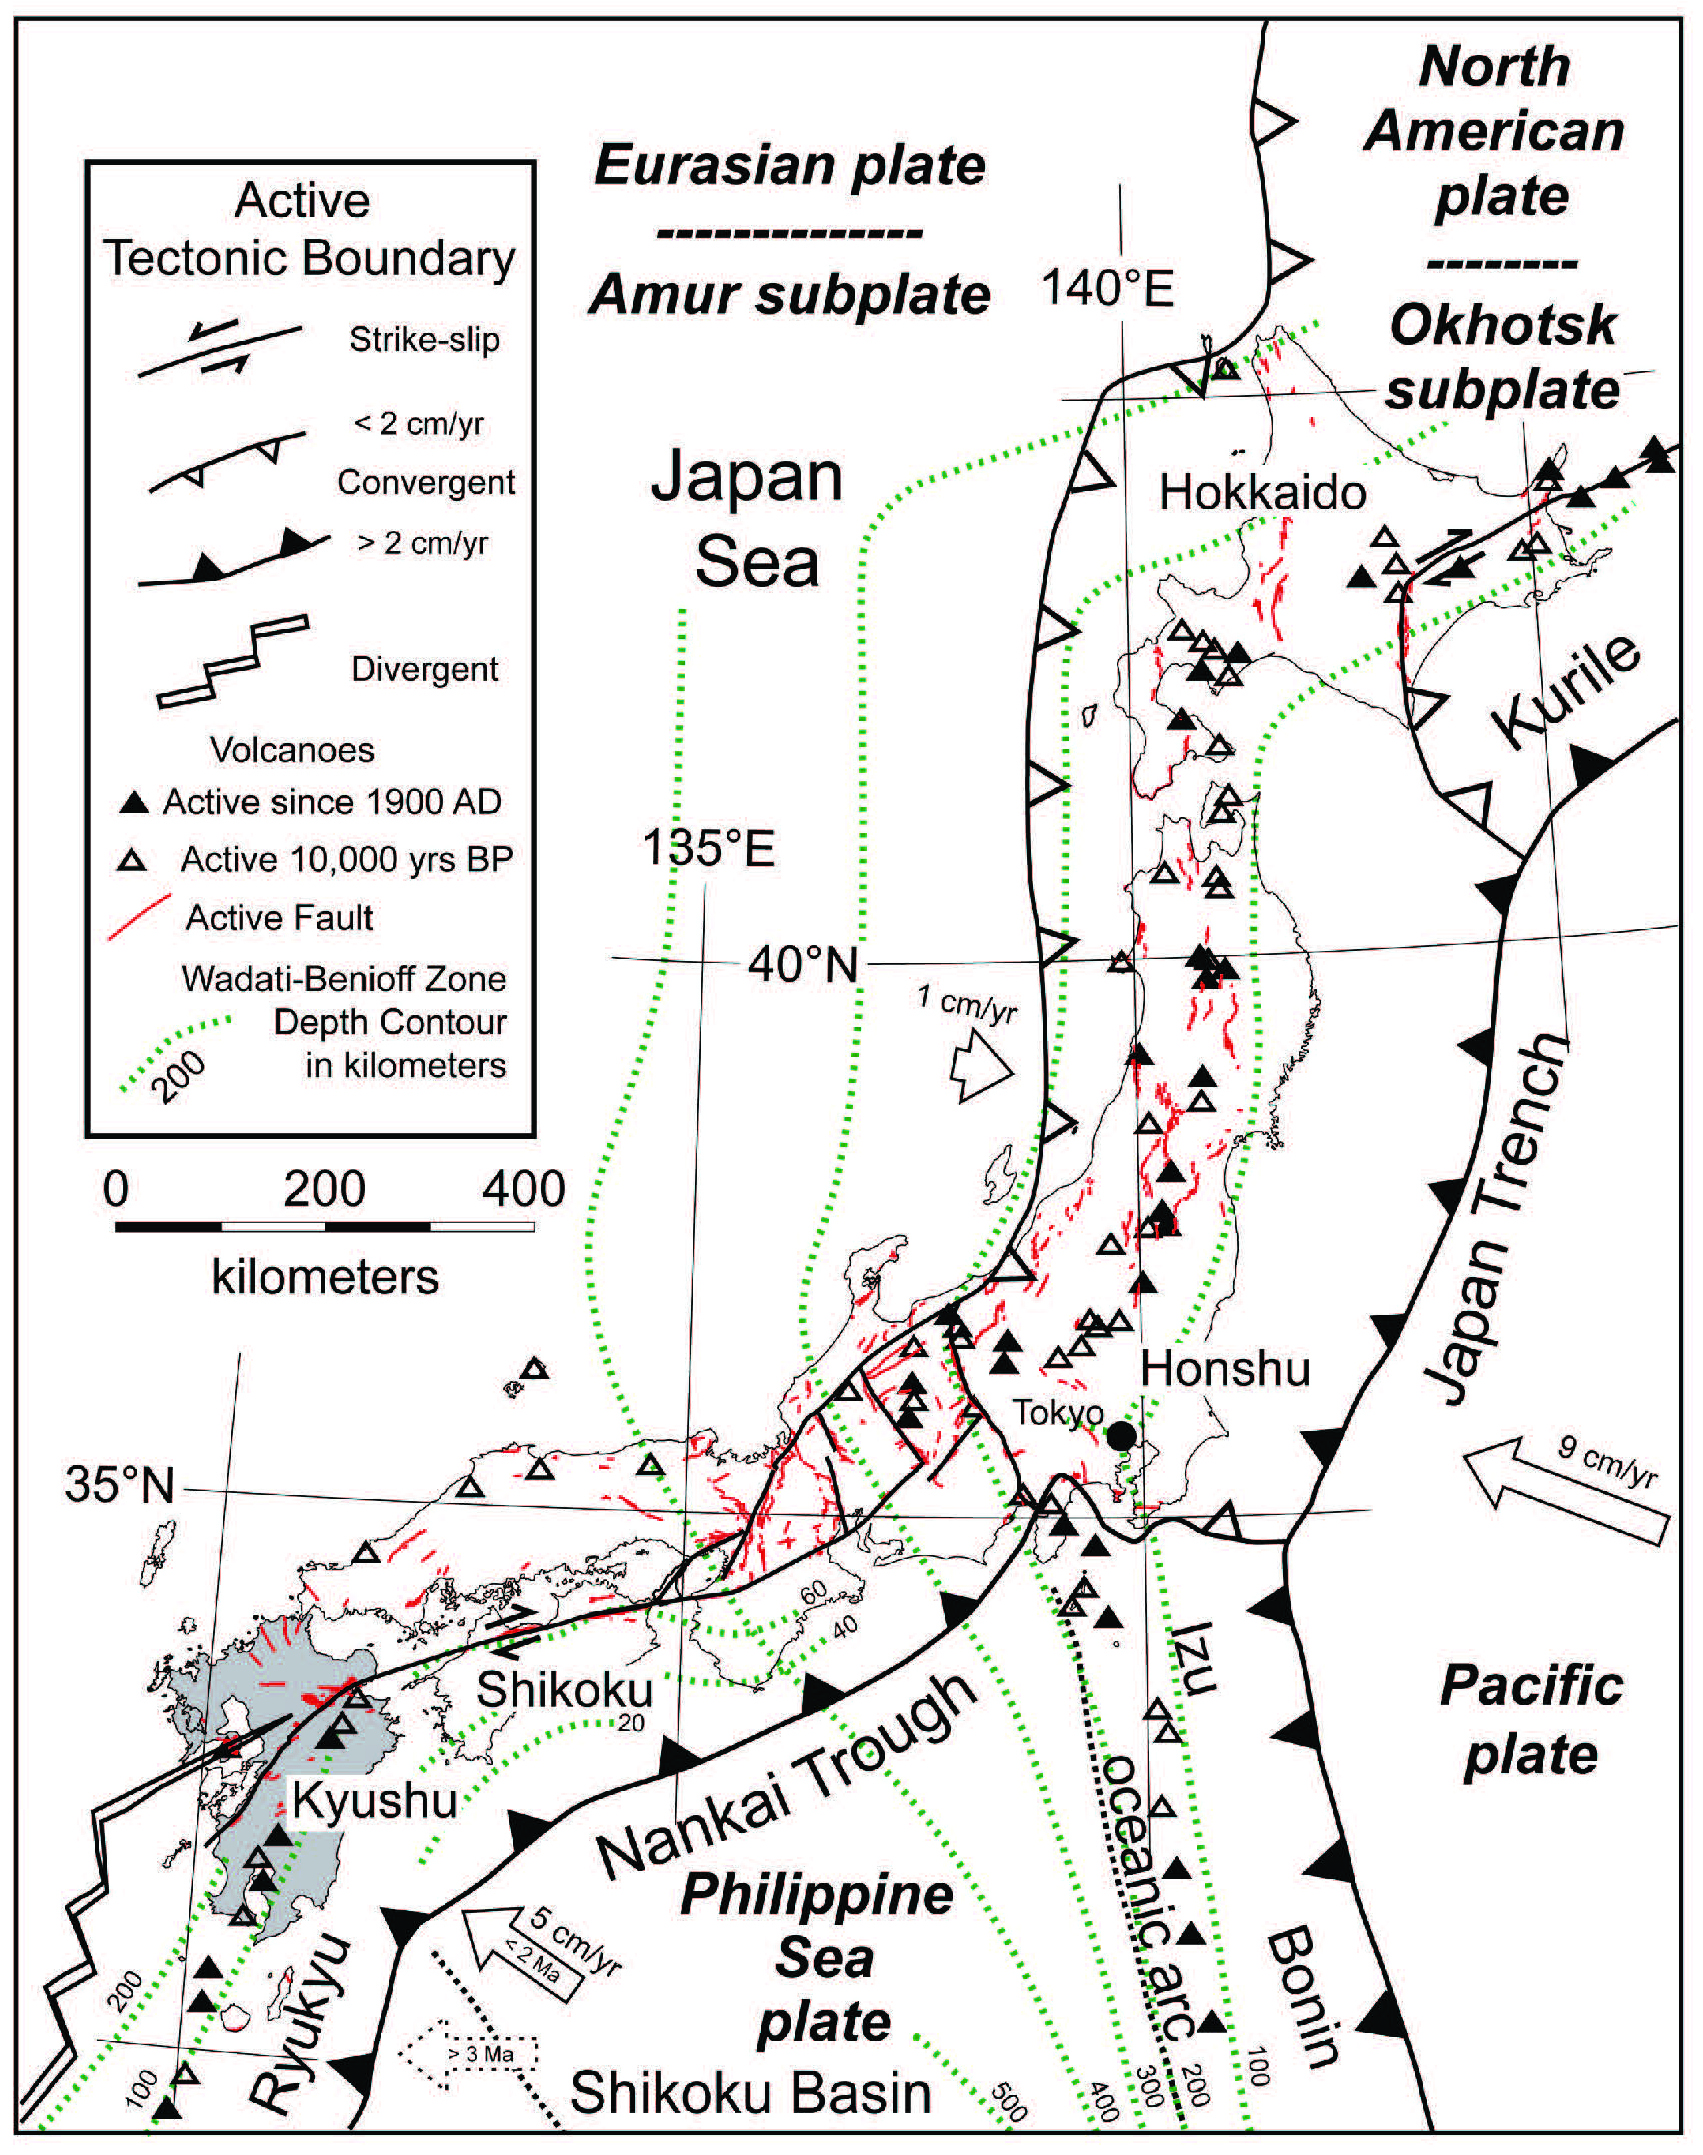 earthquake report hokkaido japan jay patton online World Map with Countries China Japan Korea and South Name tectonic setting of kyushu within the japanese island arc the locations of active faults and volcanoes that have been active in the last 10 000 years are